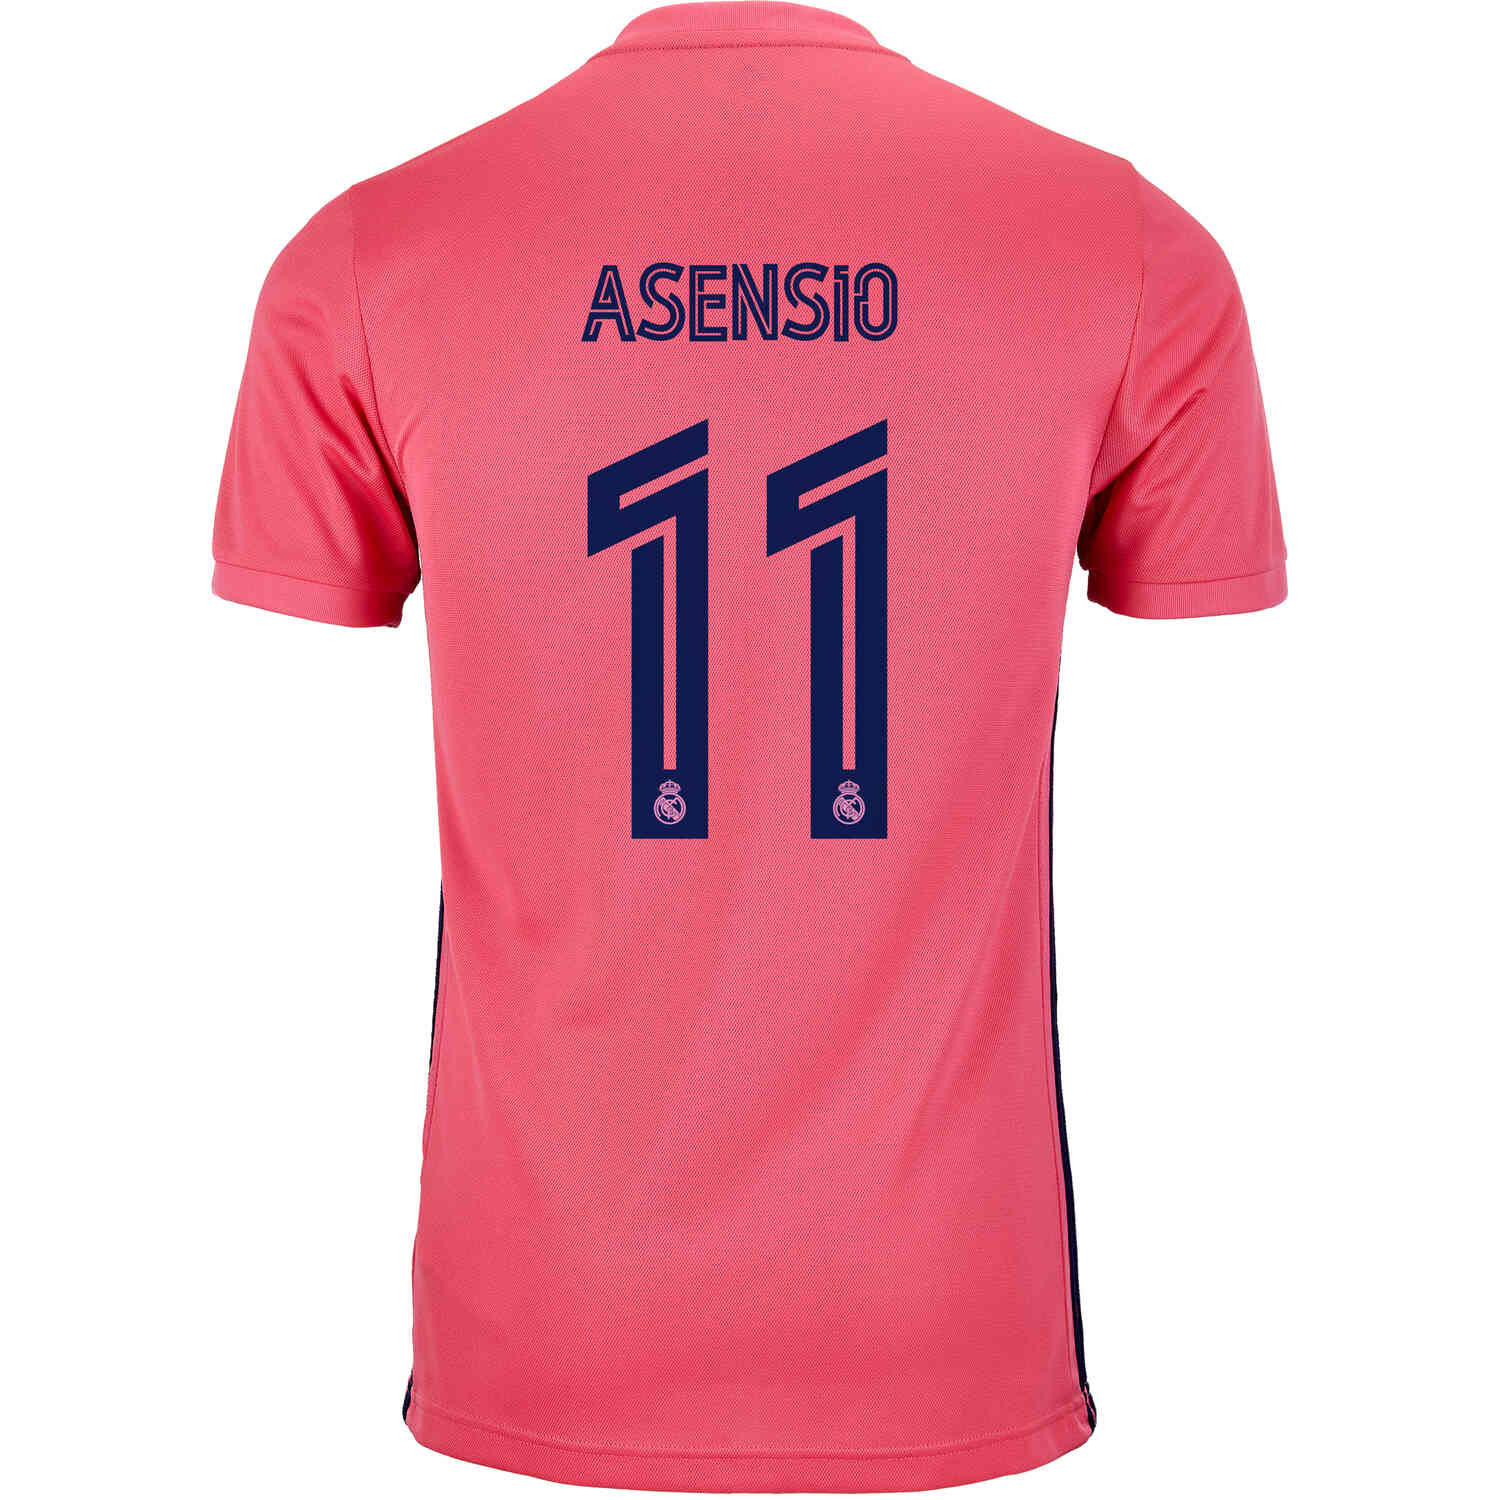 2020/21 Marco Asensio Real Madrid Away Jersey - Soccer Master